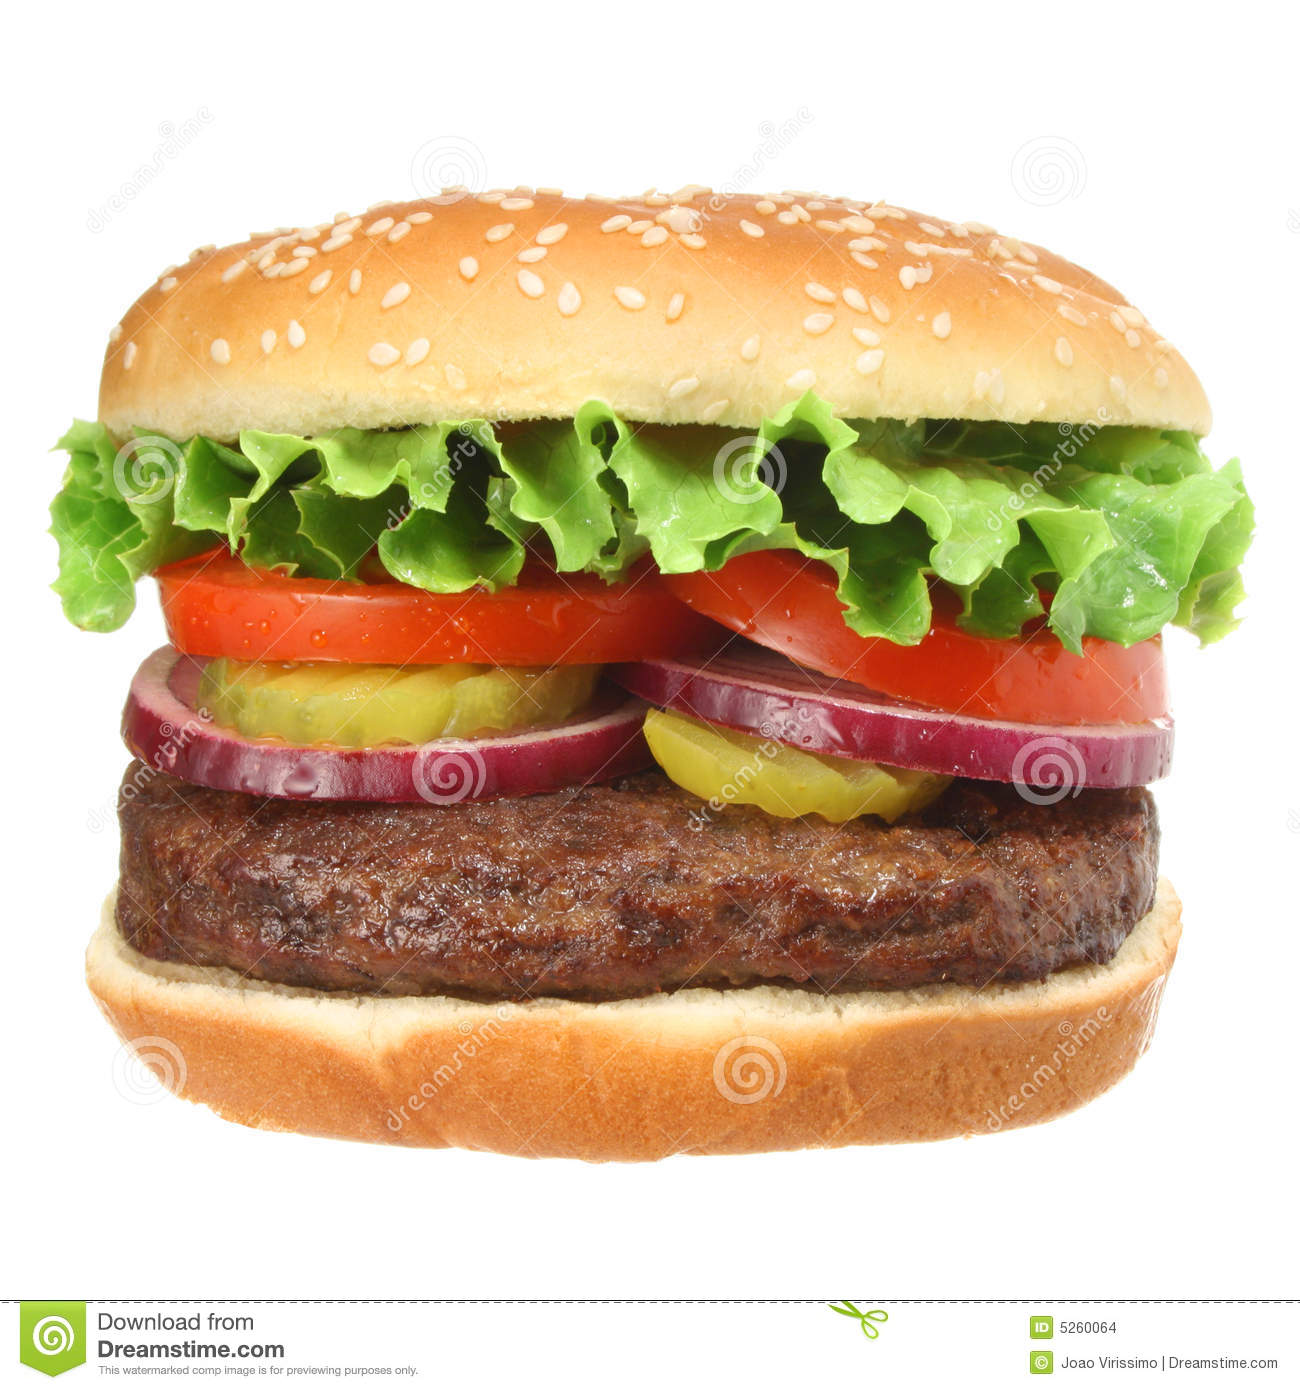 Hamburger with fixings isolated on white